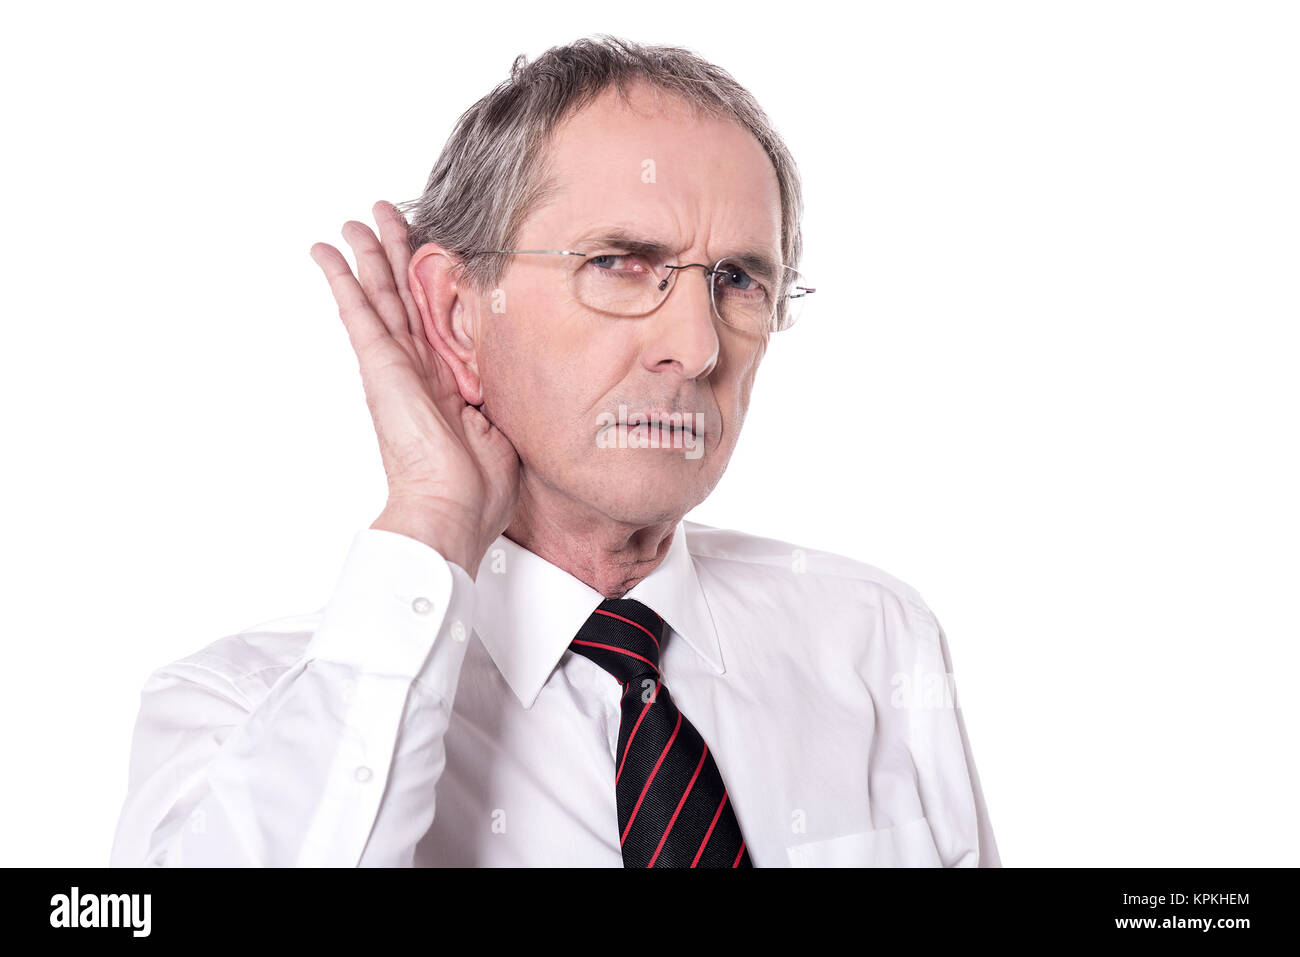 Can you speak out loudly! - Stock Image